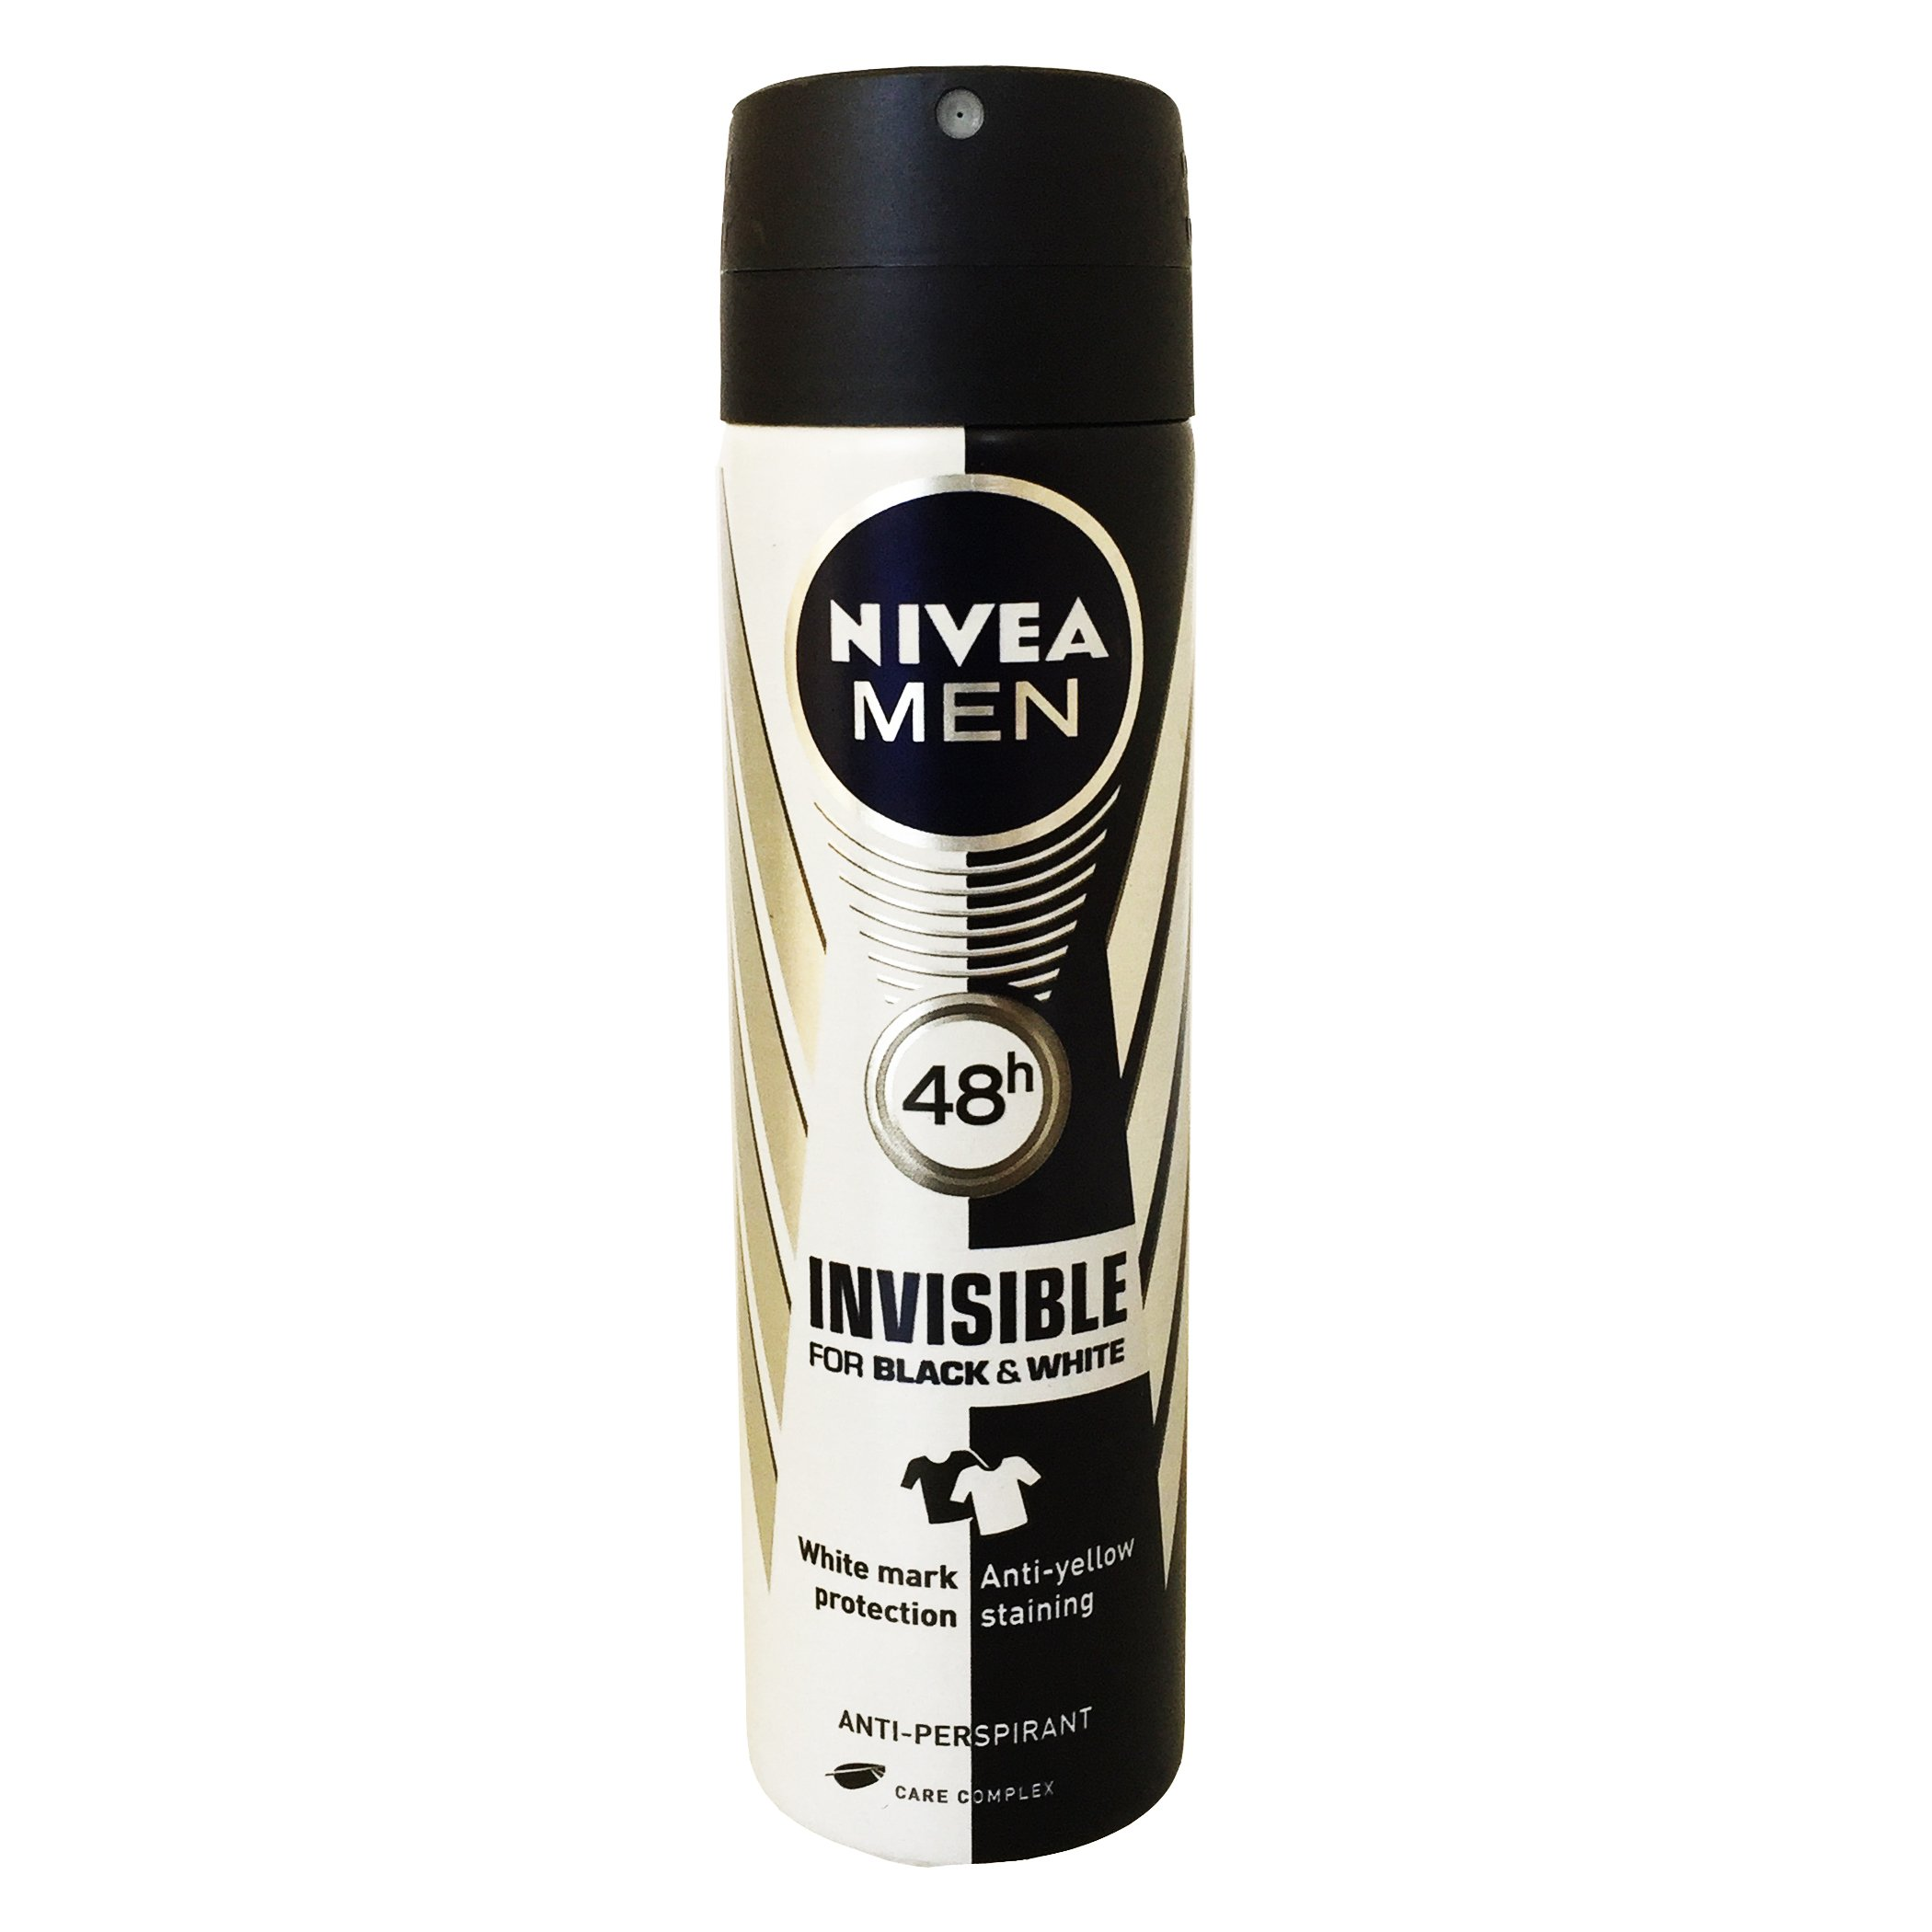 Nivea for Men Invisible for Black and White Deodorant Spray 150ml 48 Hr Antiperspirantl (Pack of 12) + Our Travel Size Perfume